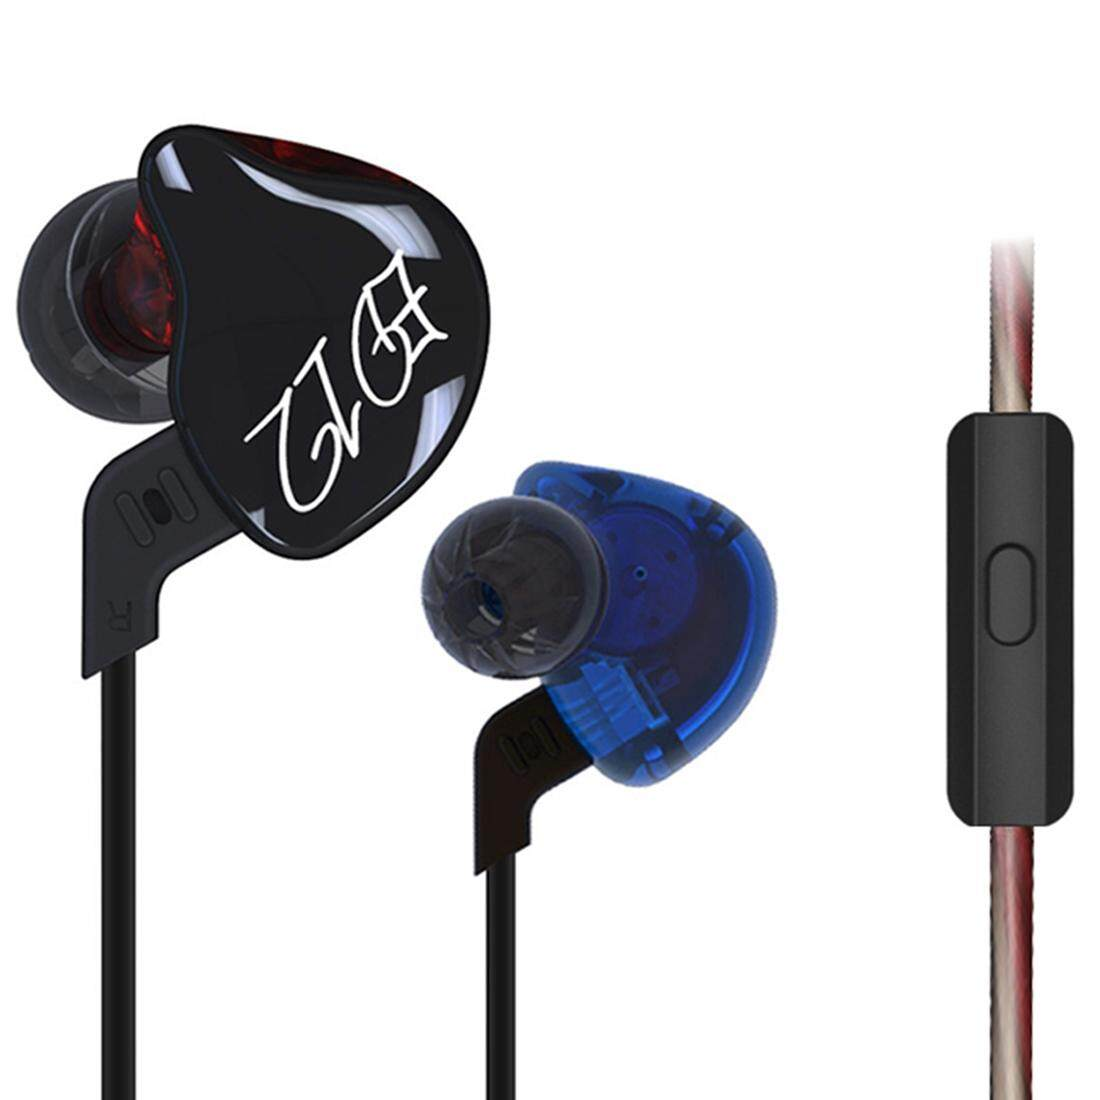 KZ ED12 1.2m 3.5mm Hanging Ear Sports Design In-Ear Style Wire Control Earphone, For iPhone, iPad, Galaxy, Huawei, Xiaomi, LG, HTC and Other Smart